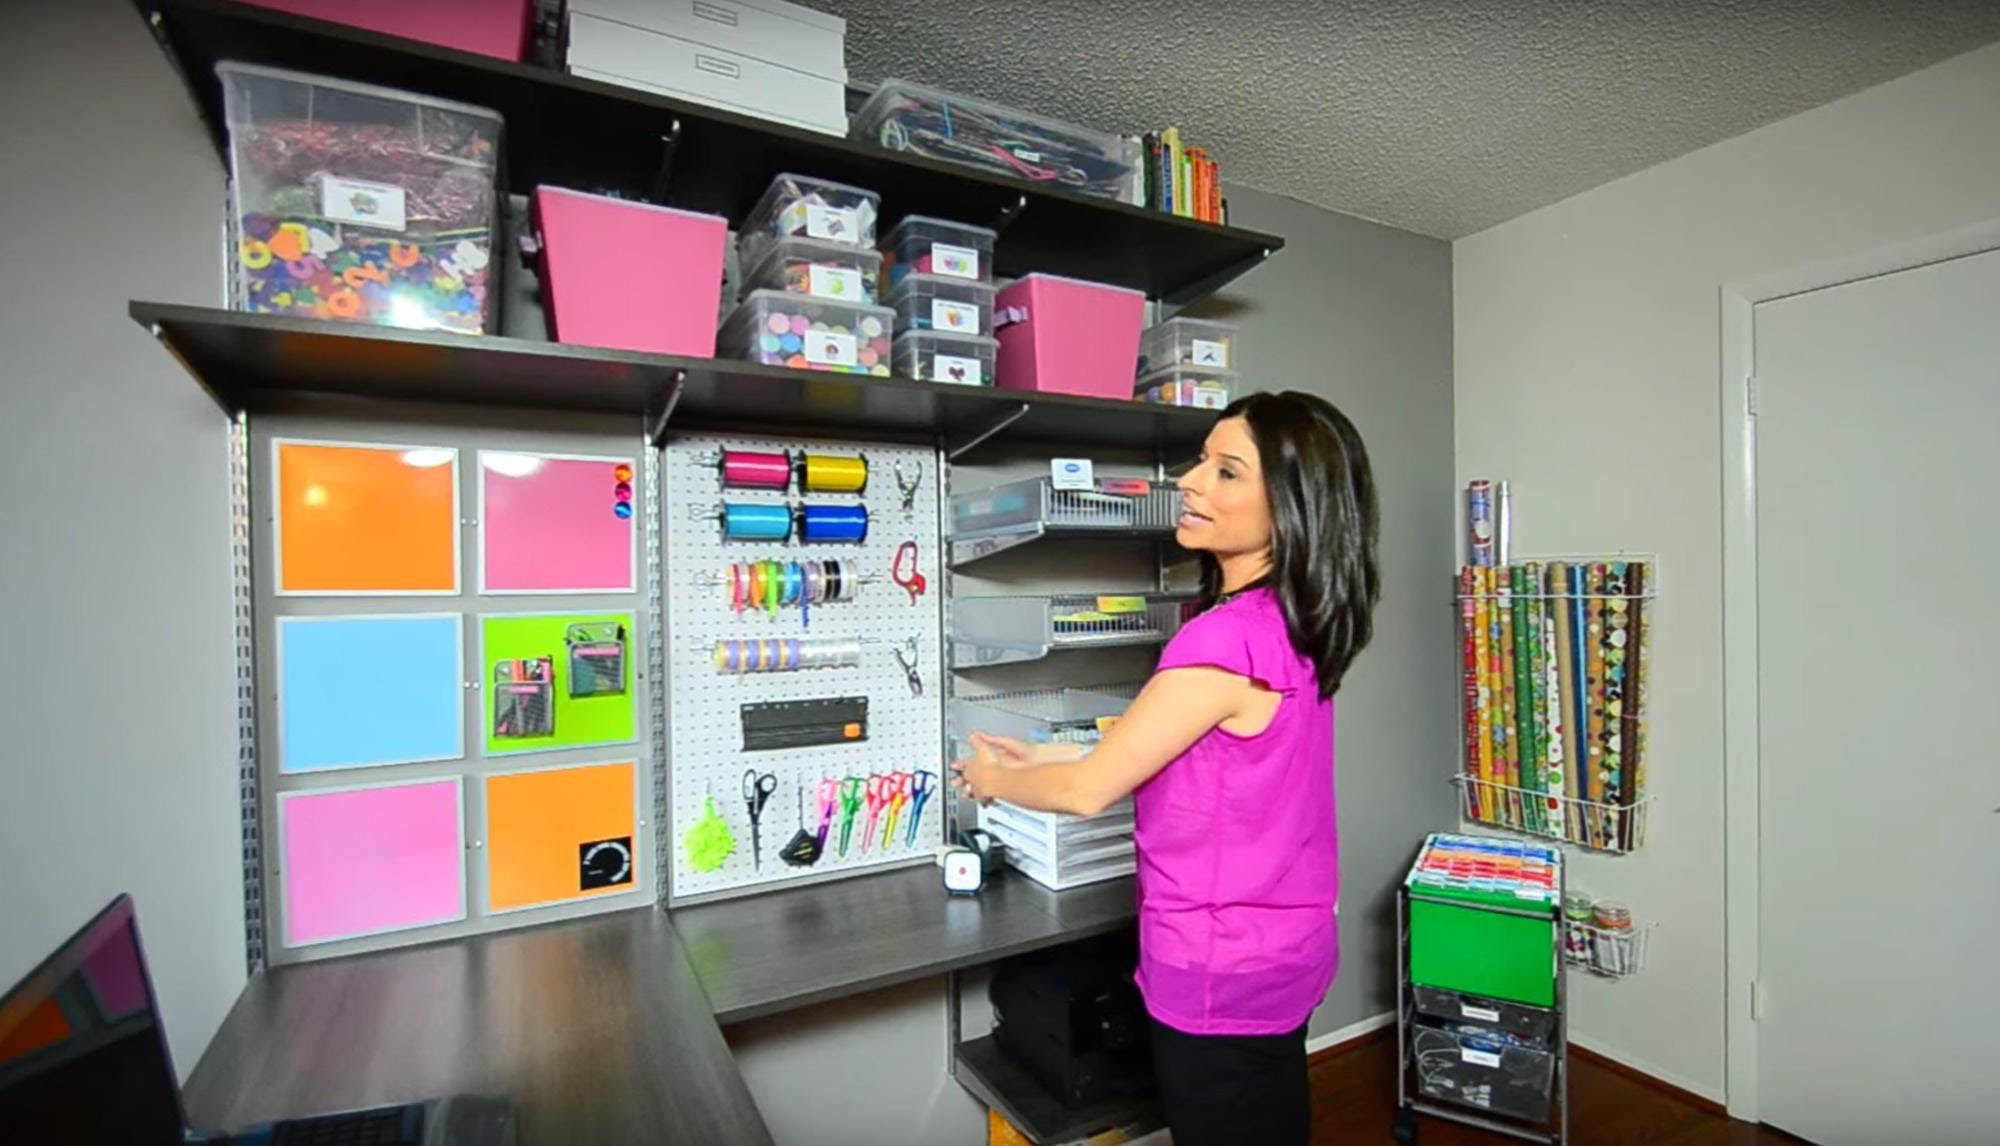 Here are just a few of her tips for organizing a home office.